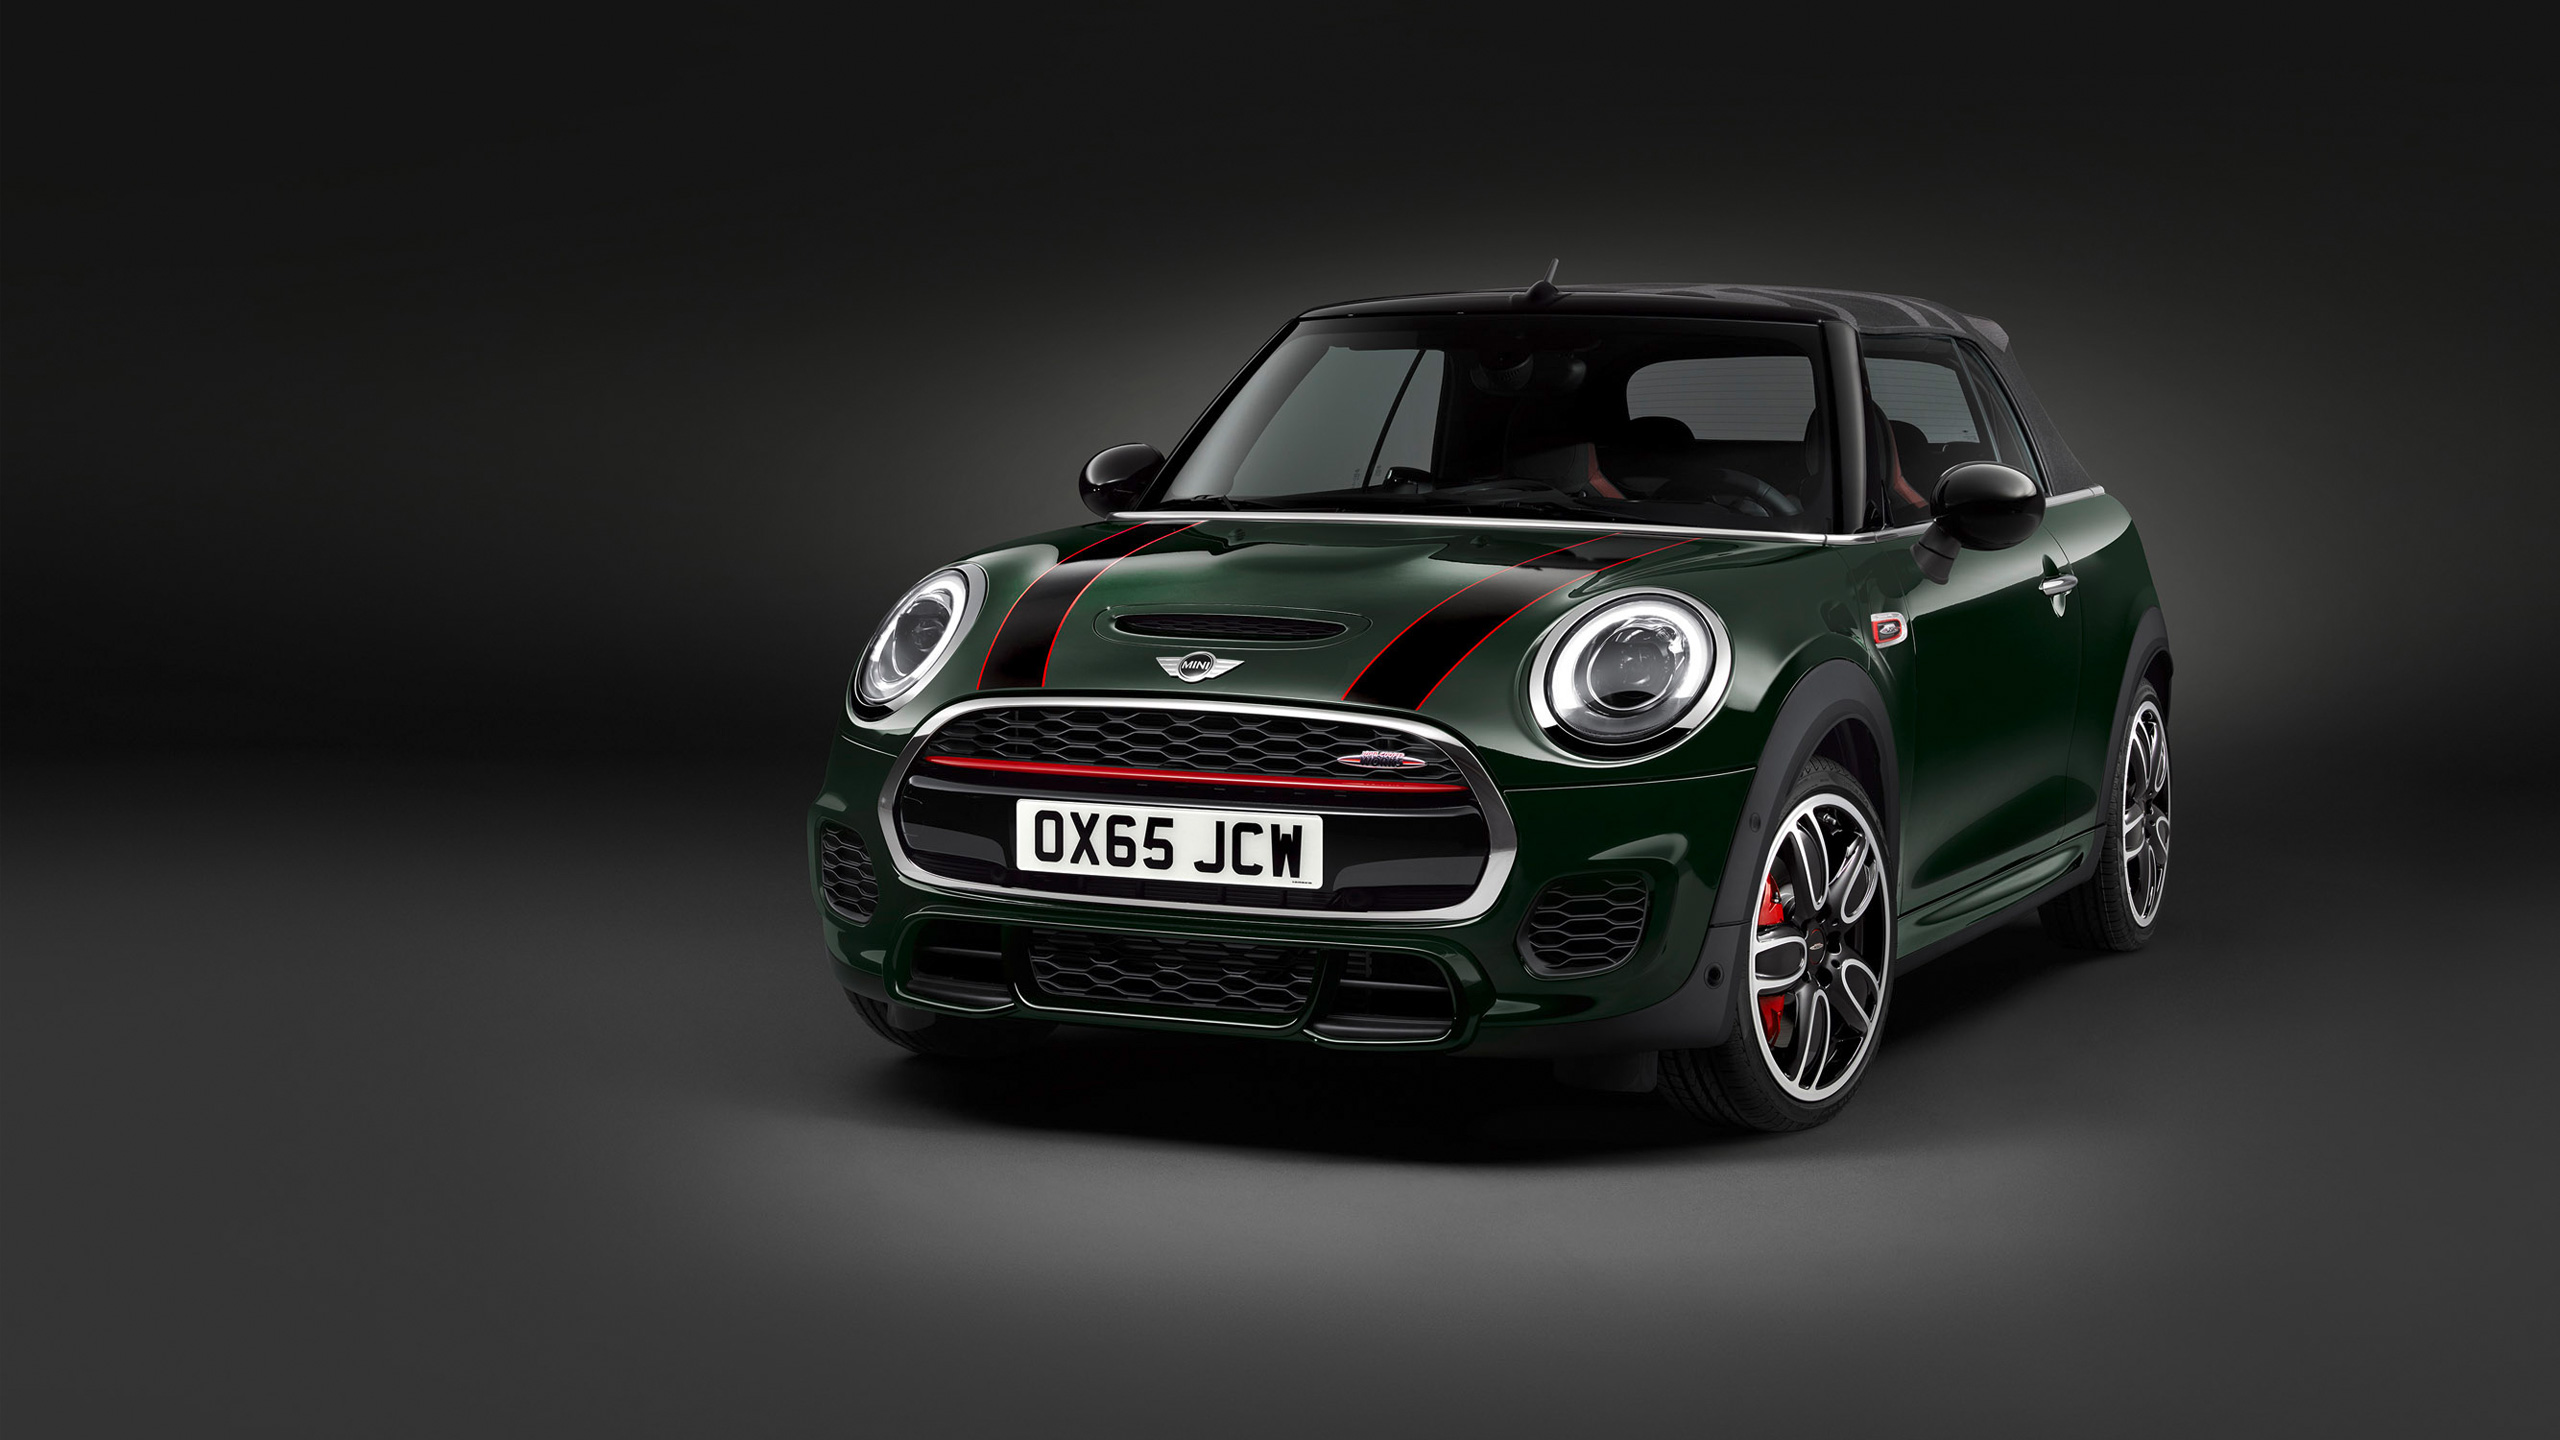 2016 mini john cooper works convertible wallpaper hd car wallpapers id 6387. Black Bedroom Furniture Sets. Home Design Ideas